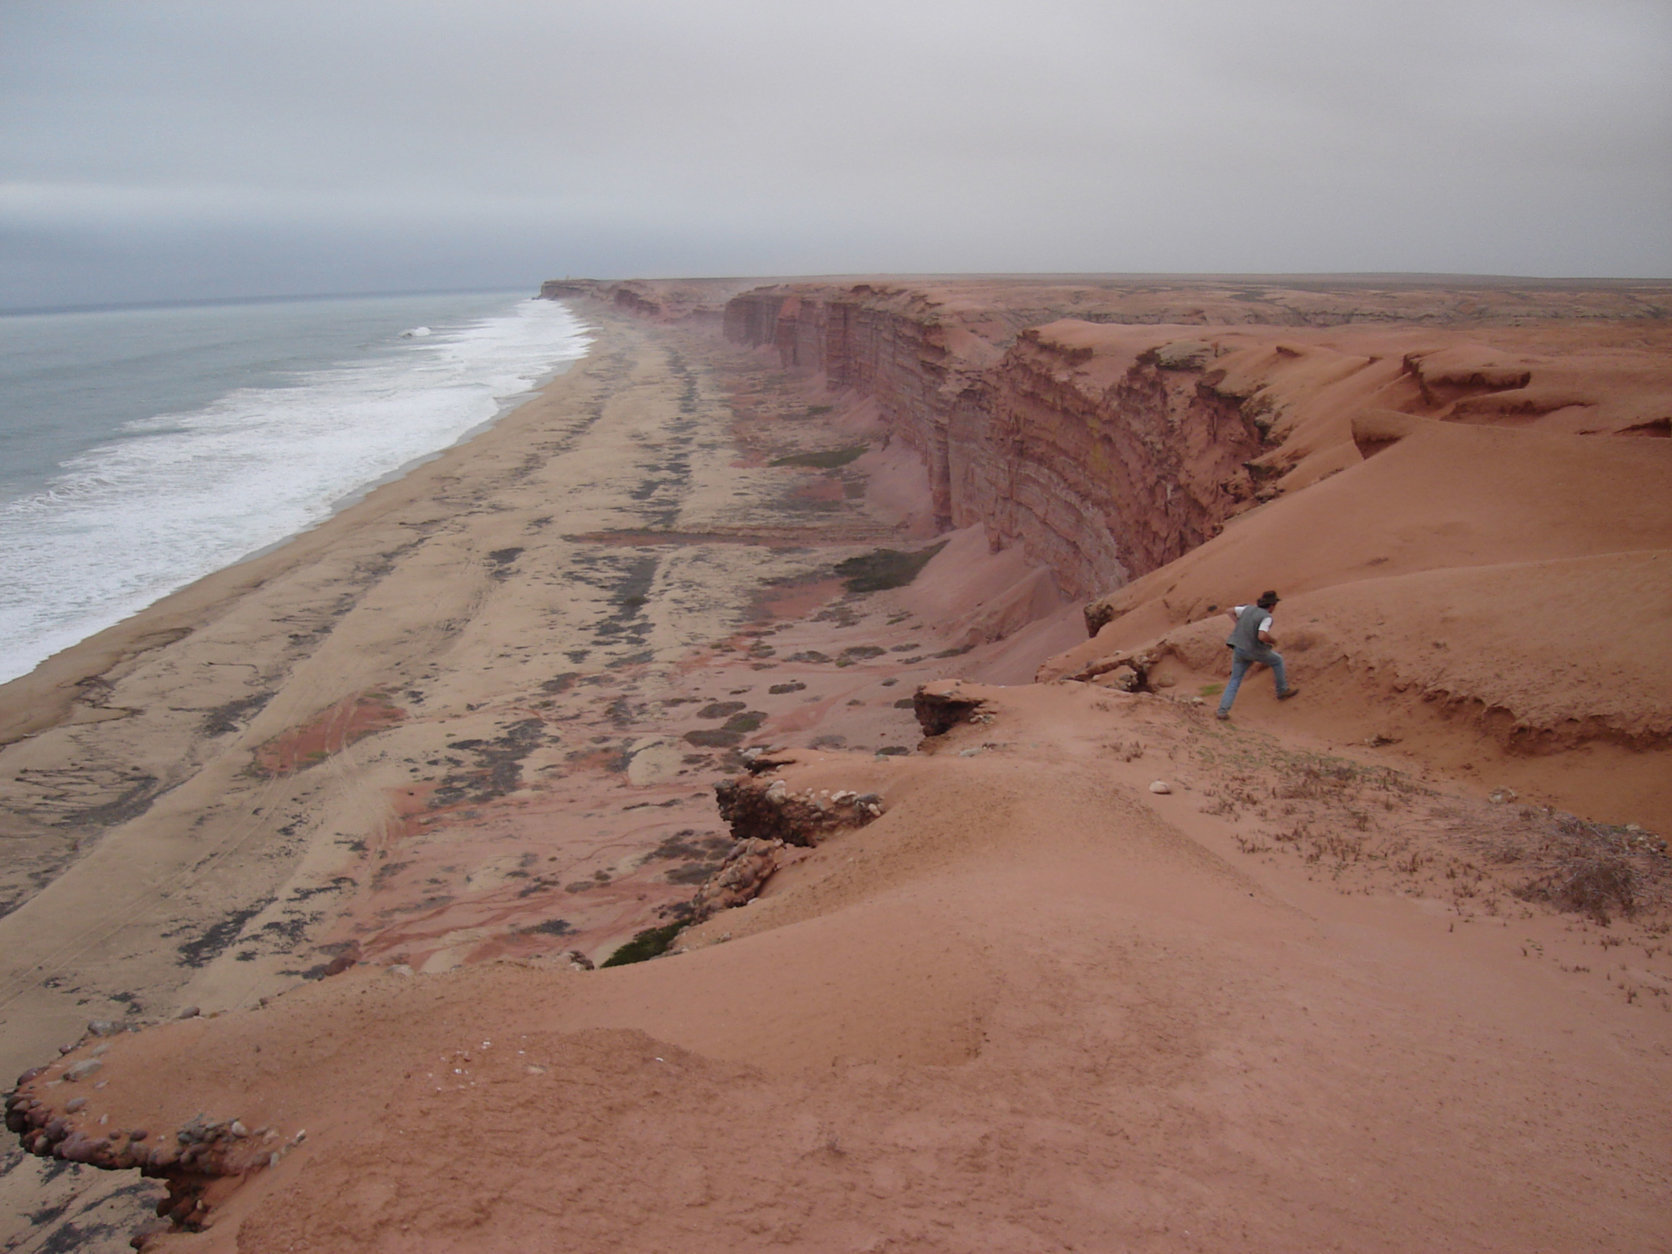 Modern cliffs of coastal Angola where Projecto Paleoangola paleontologists excavate fossils of life that once lived in Angola's ancient seas. (Projecto Paleoangola)